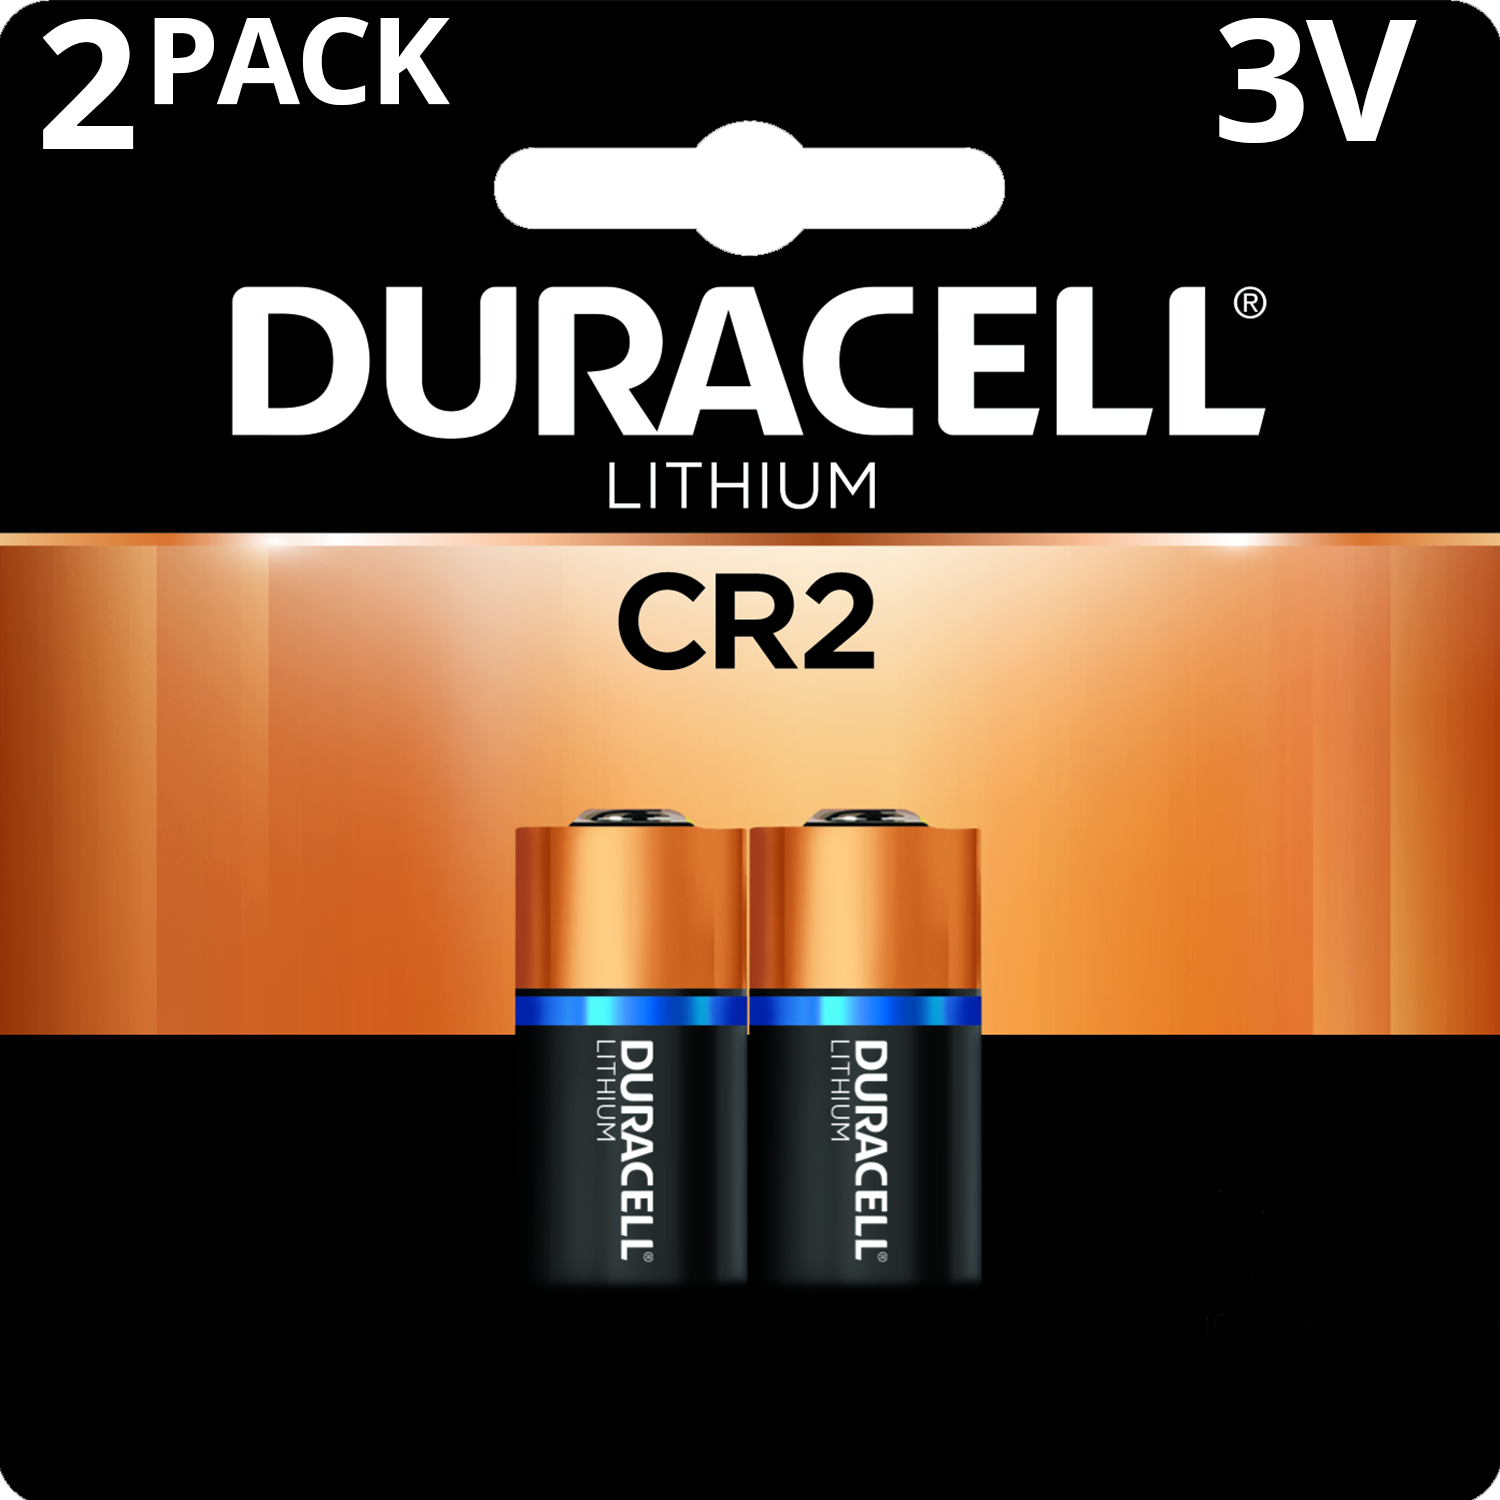 Duracell 3V High Performance Lithium Battery CR2 2 Pack Long-Lasting